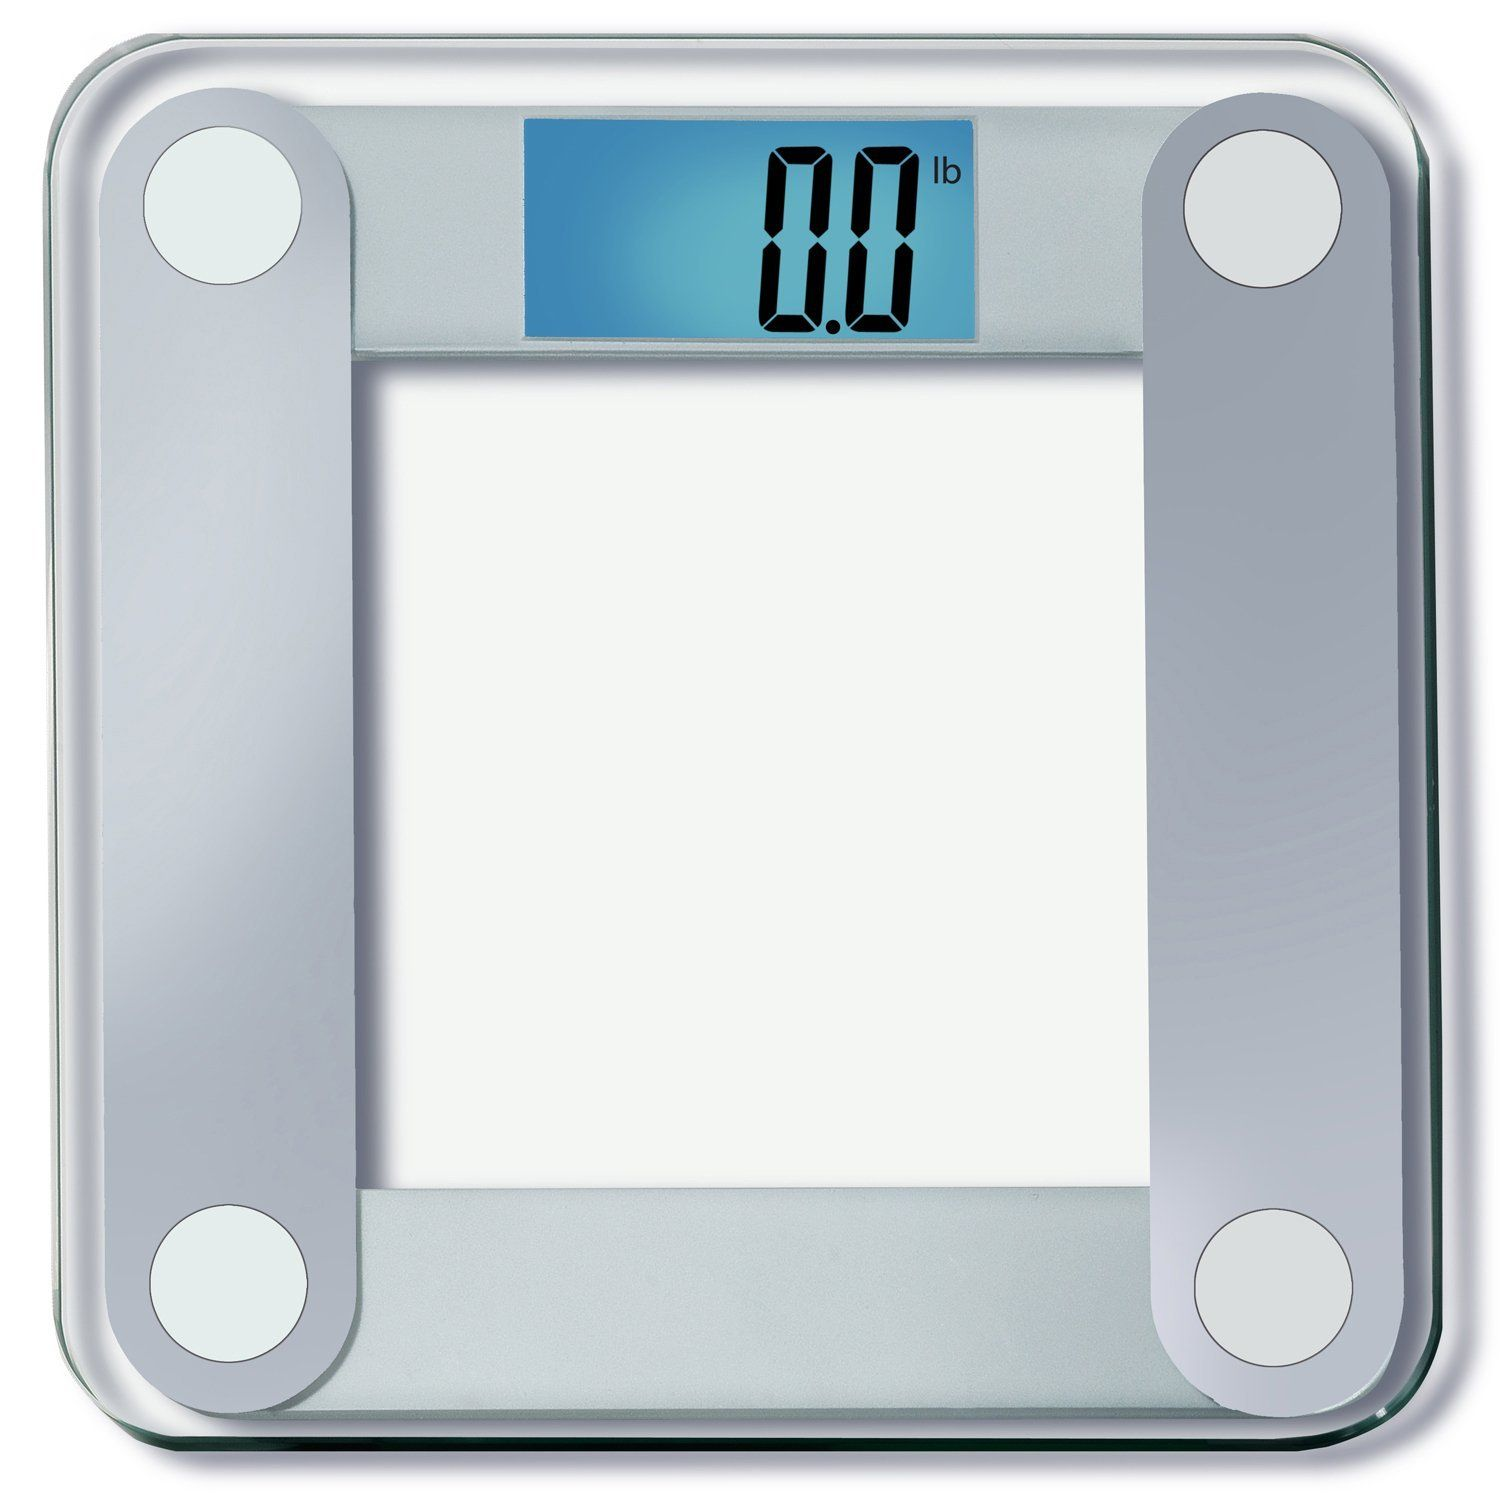 Update 2017: The Best Bathroom Scale For Most People Is The EatSmart  Precision Digital Bathroom